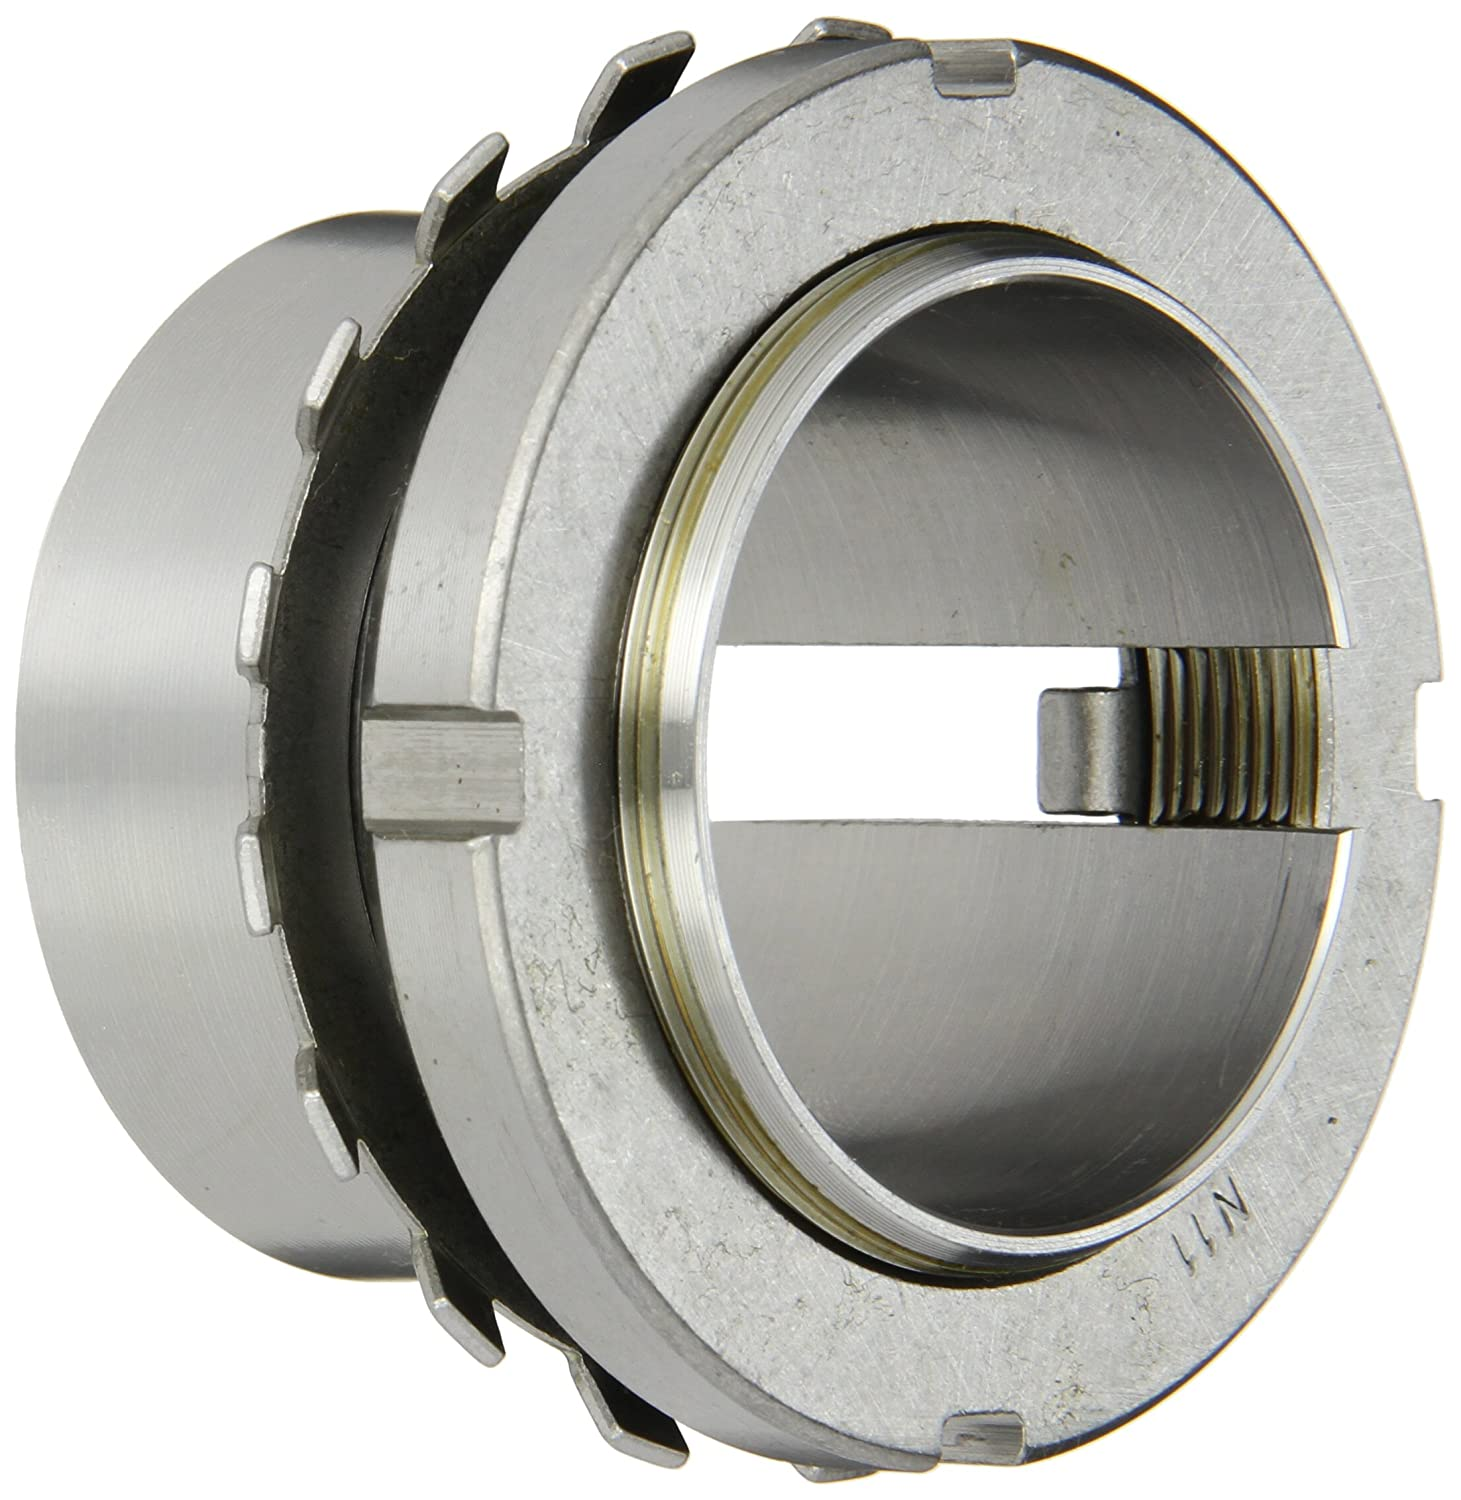 Adapter Sleeve 7 Shaft Size Inch Used With 23000K Series Roller Bearings SKF SNW 3038X7